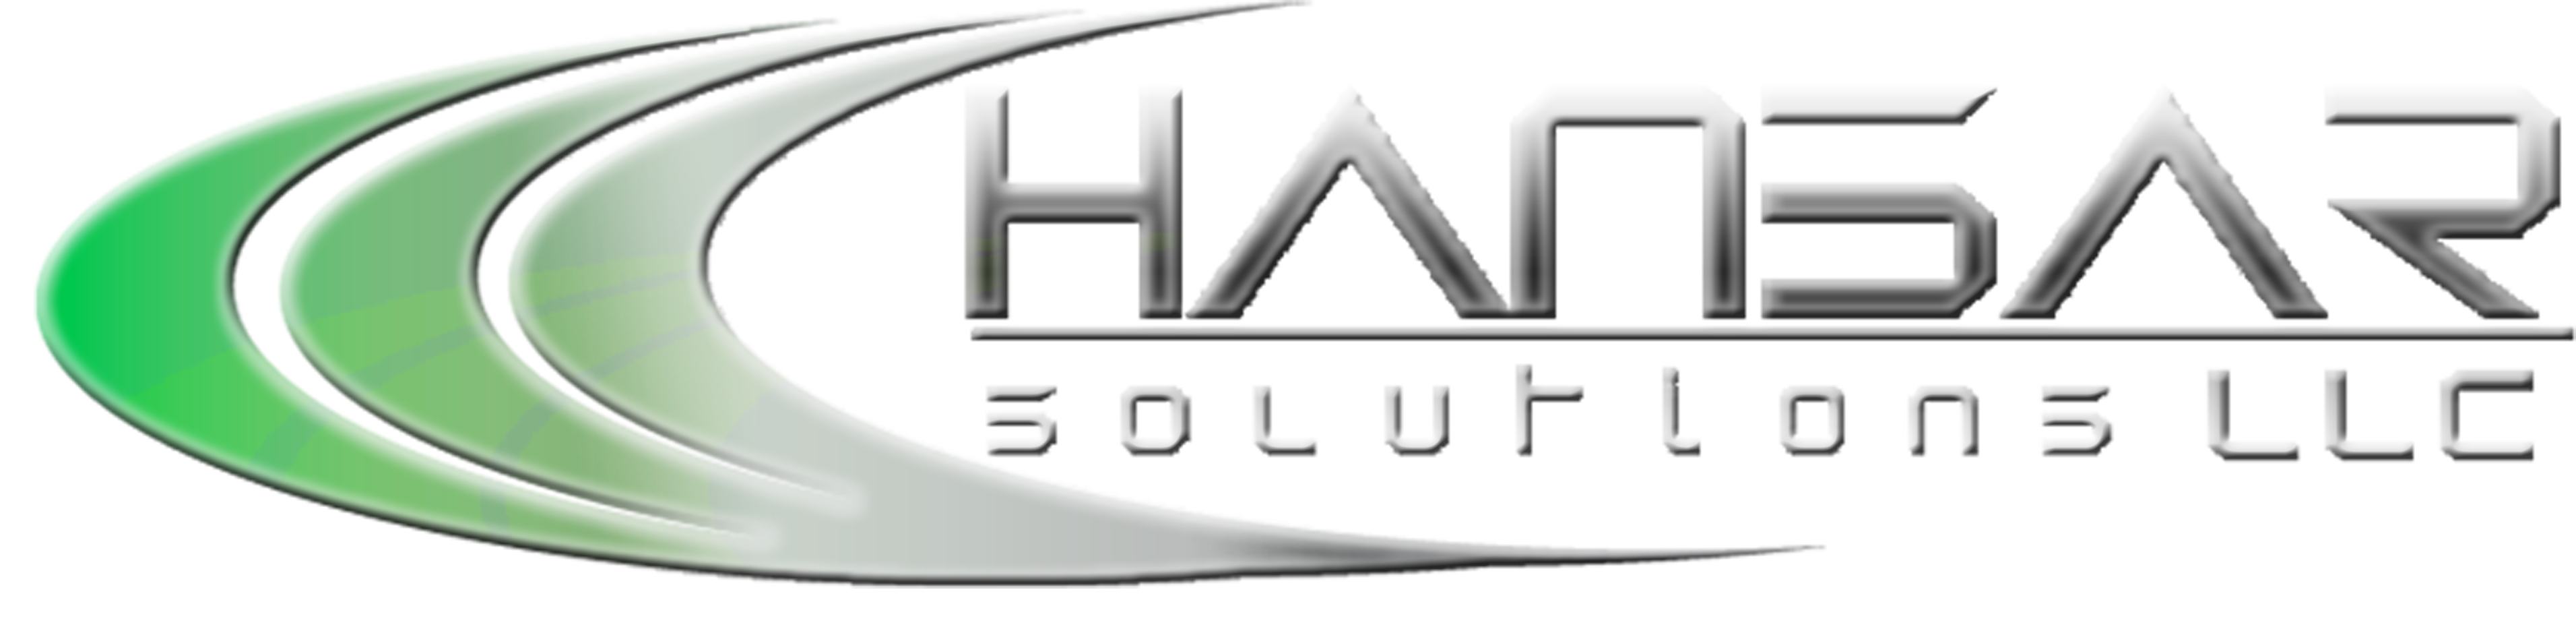 Hansar Solutions LLC - Computer Services - POS - Hardware - Software - Mainframe - Graphic Desing